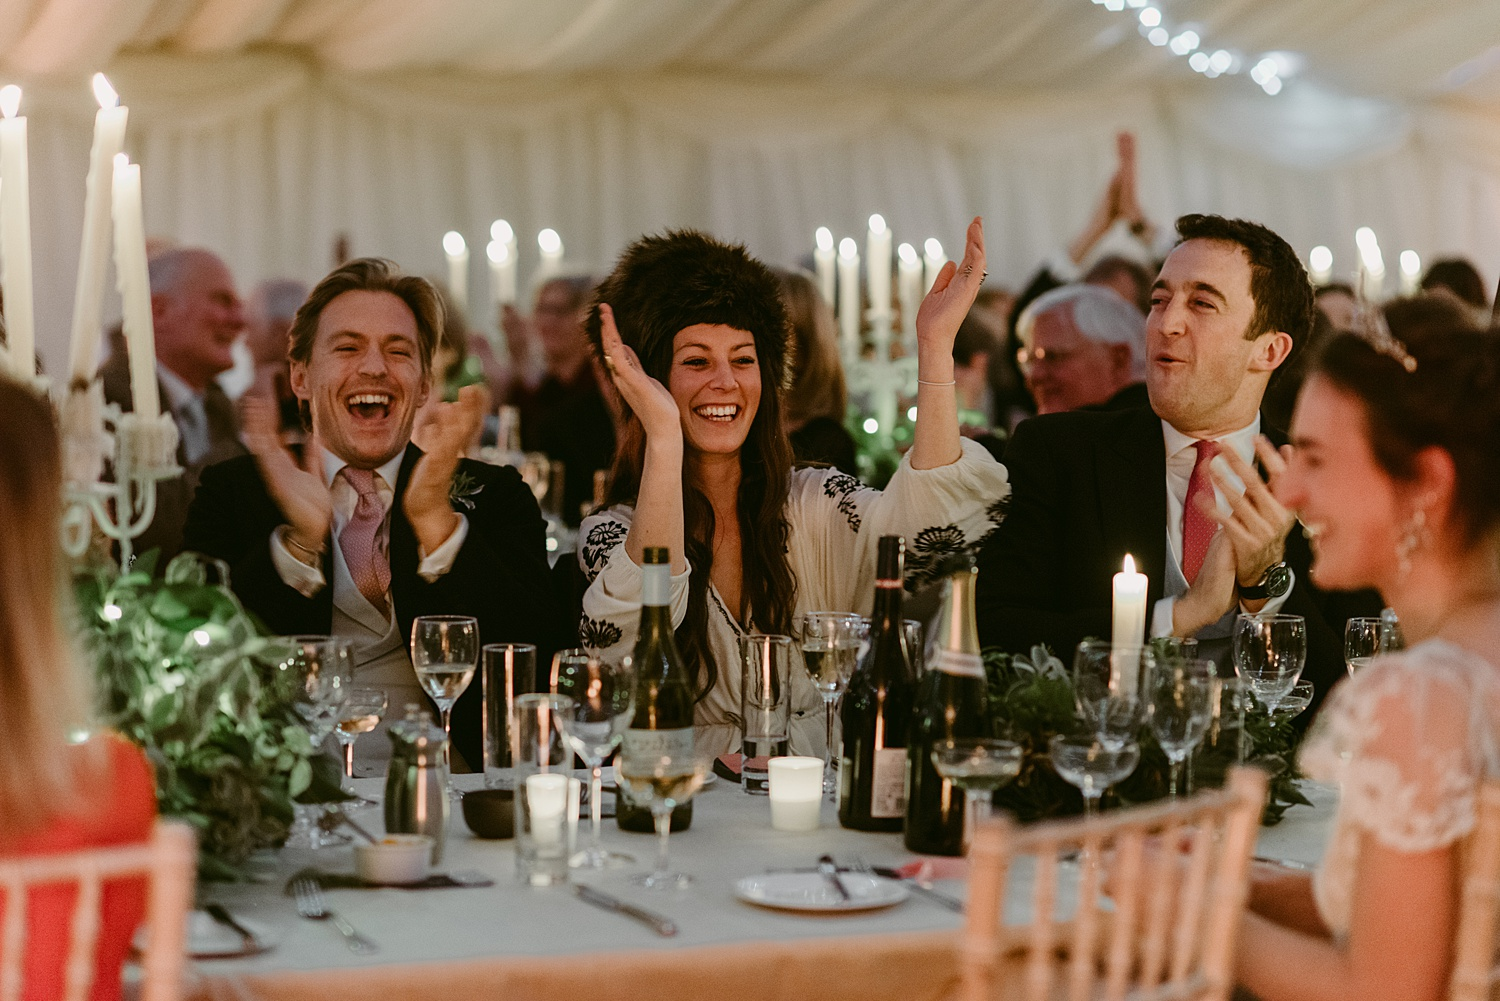 Claire-Fleck-Scottish-wedding-photography-2017__0054.jpg